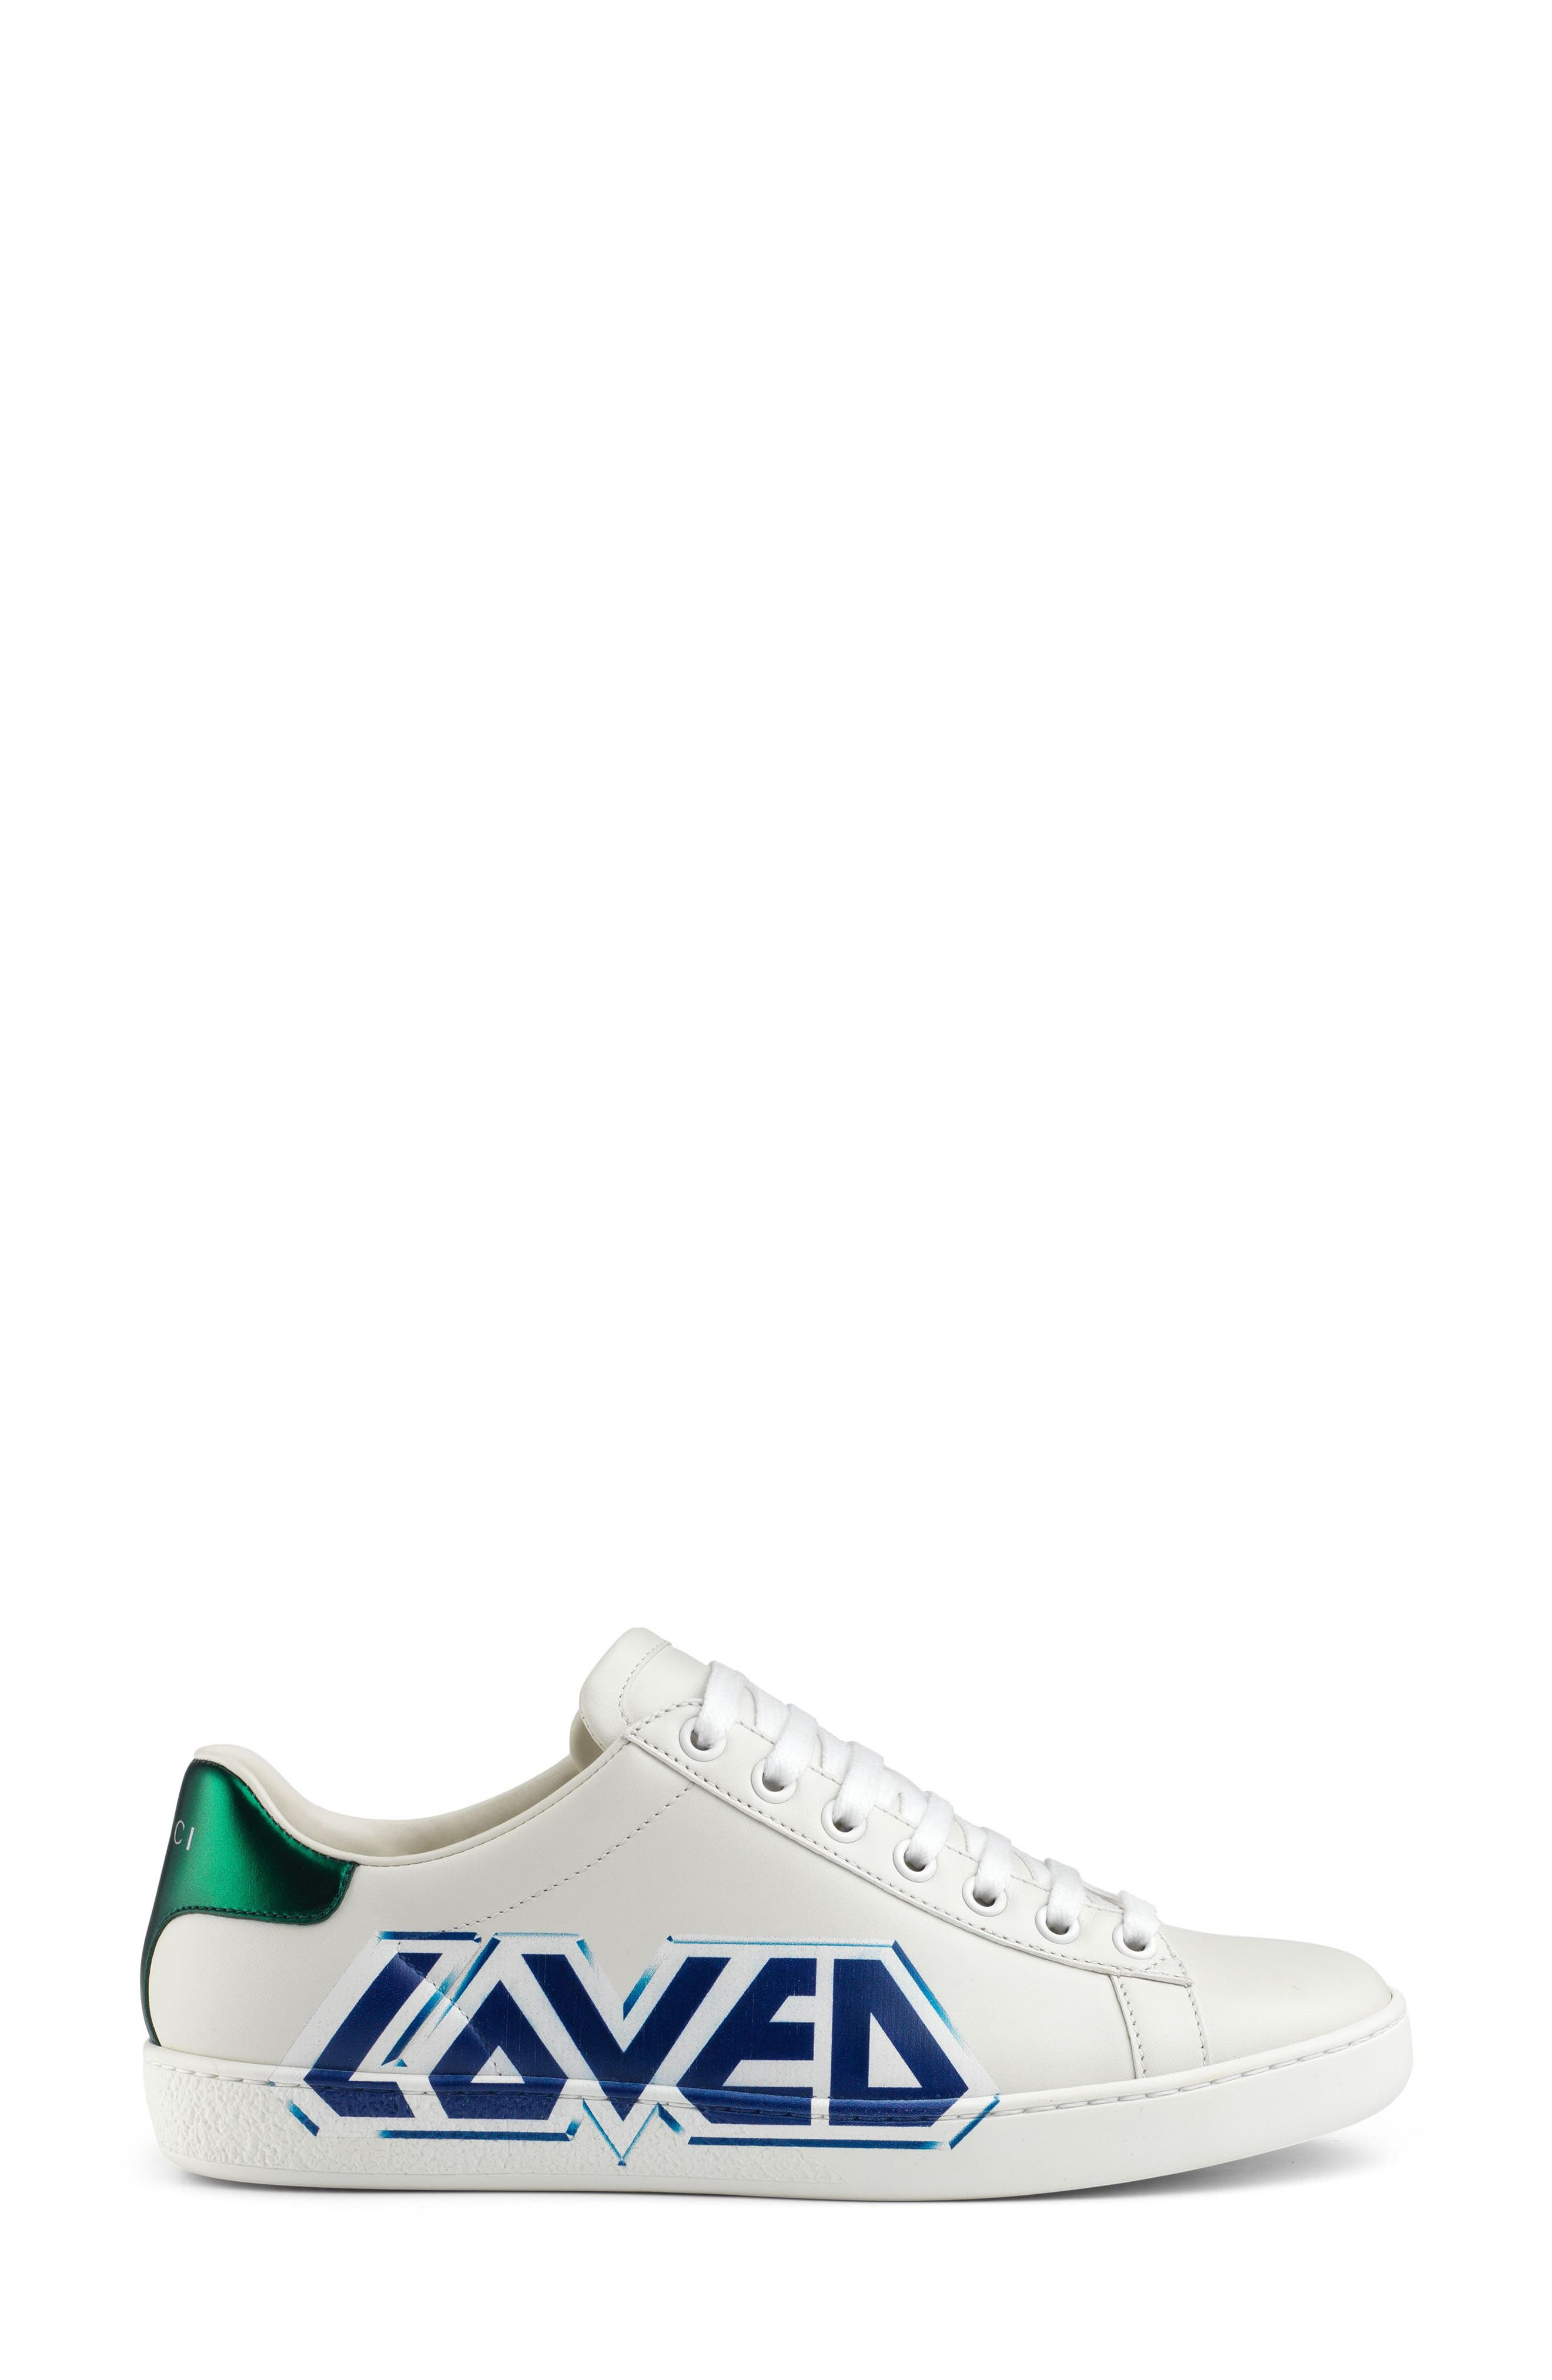 GUCCI,                             New Ace Loved Sneaker,                             Alternate thumbnail 2, color,                             WHITE